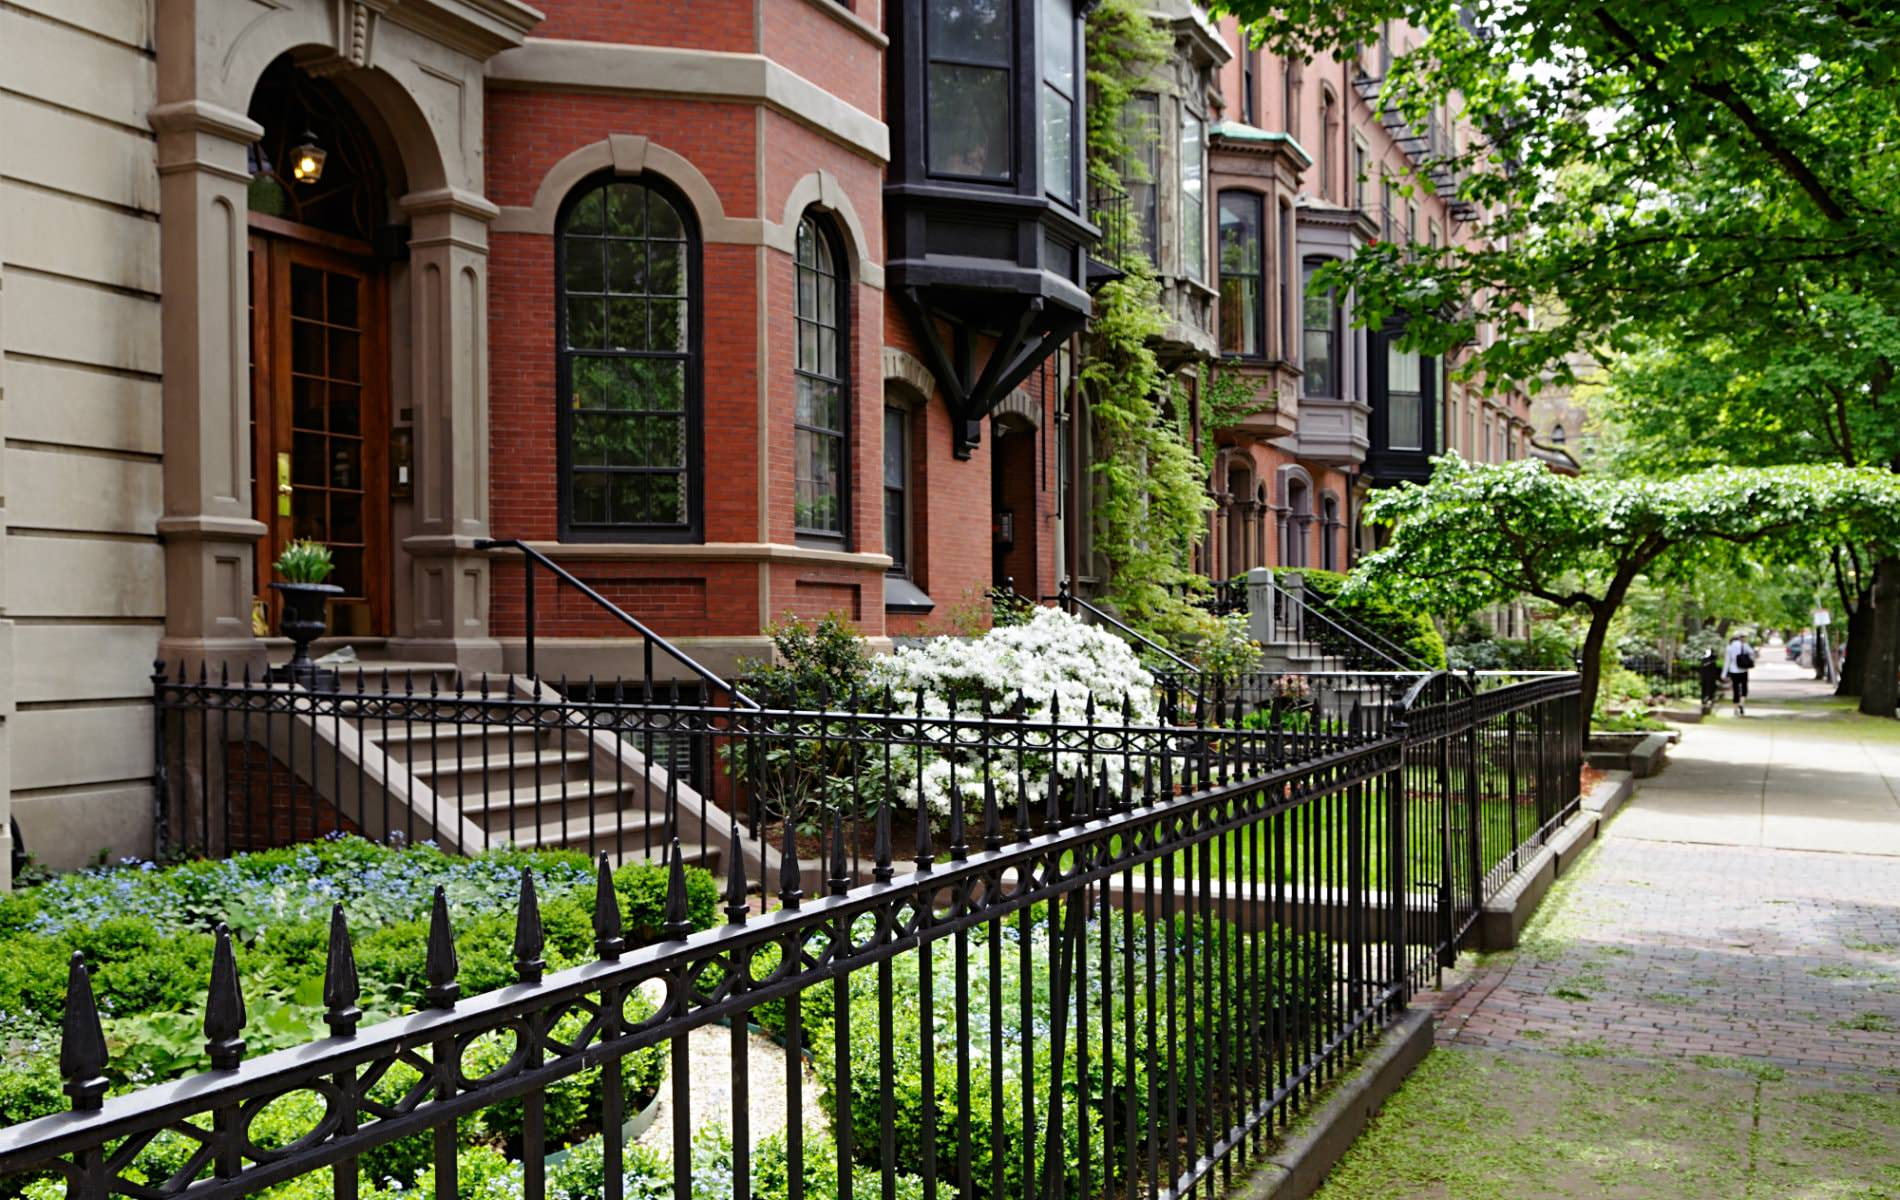 Row of red and brown brick brownstones behind black wrought iron gates